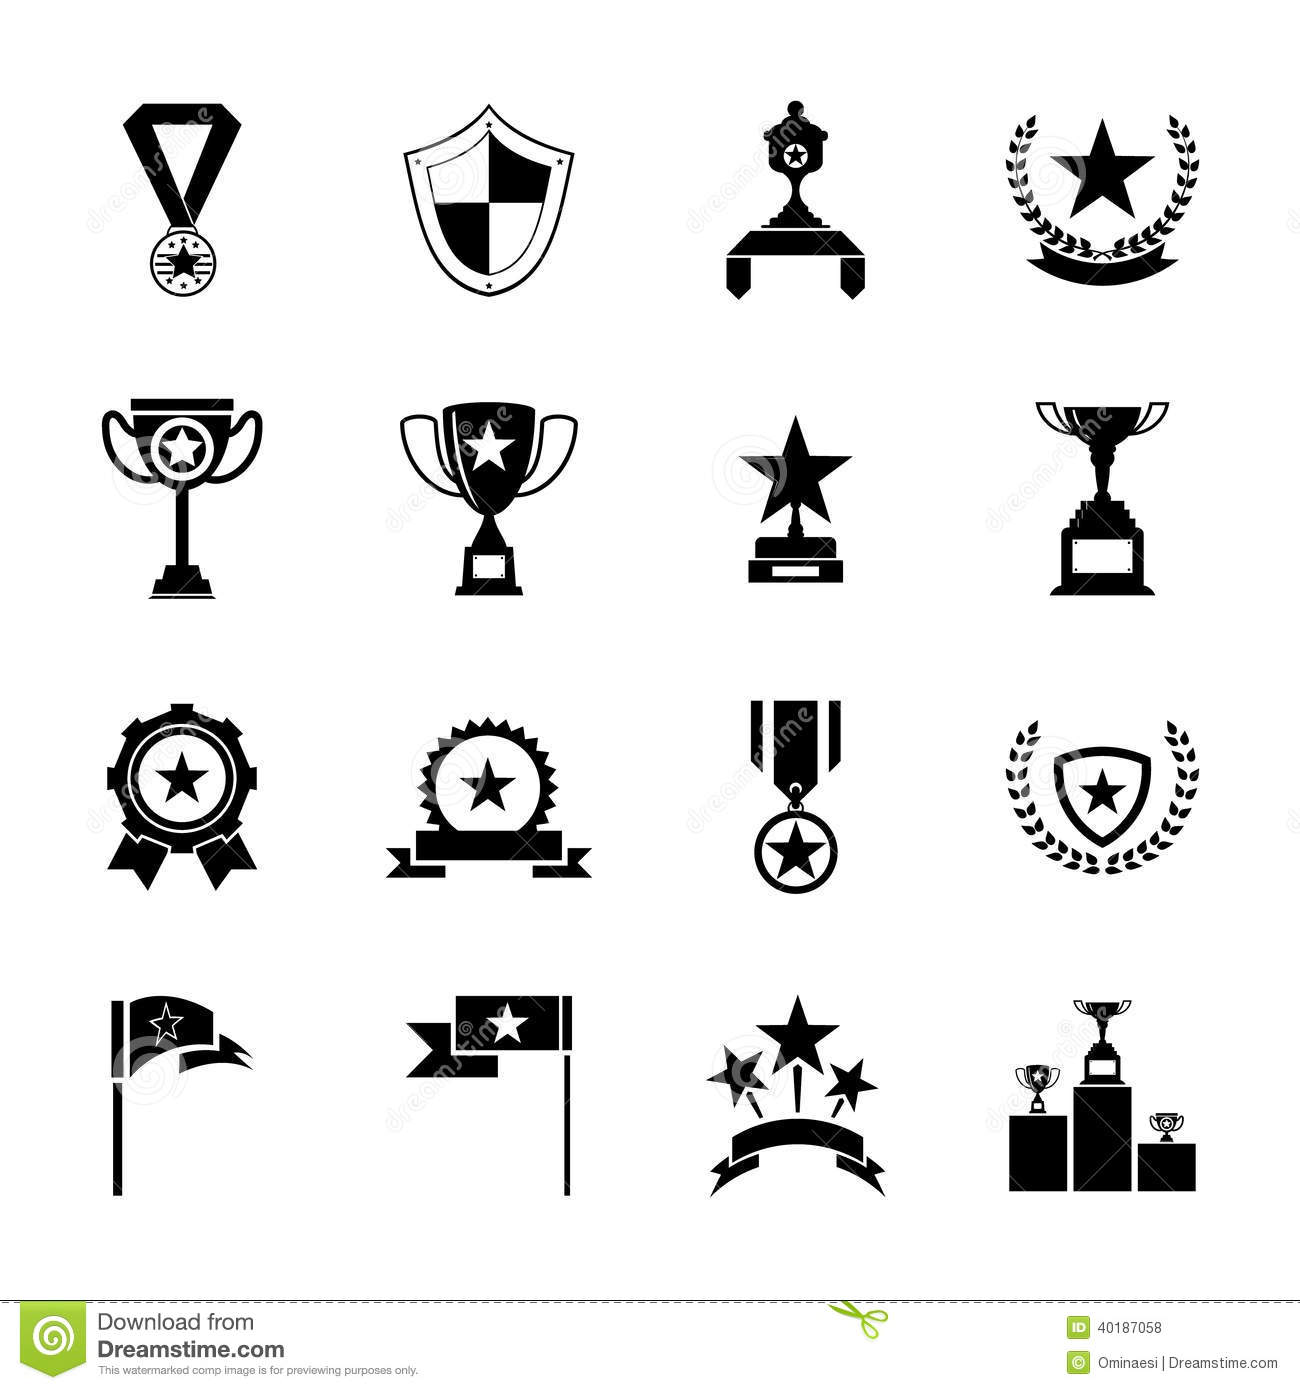 Awards Symbols And Trophy Silhouette Icons Set Isolated